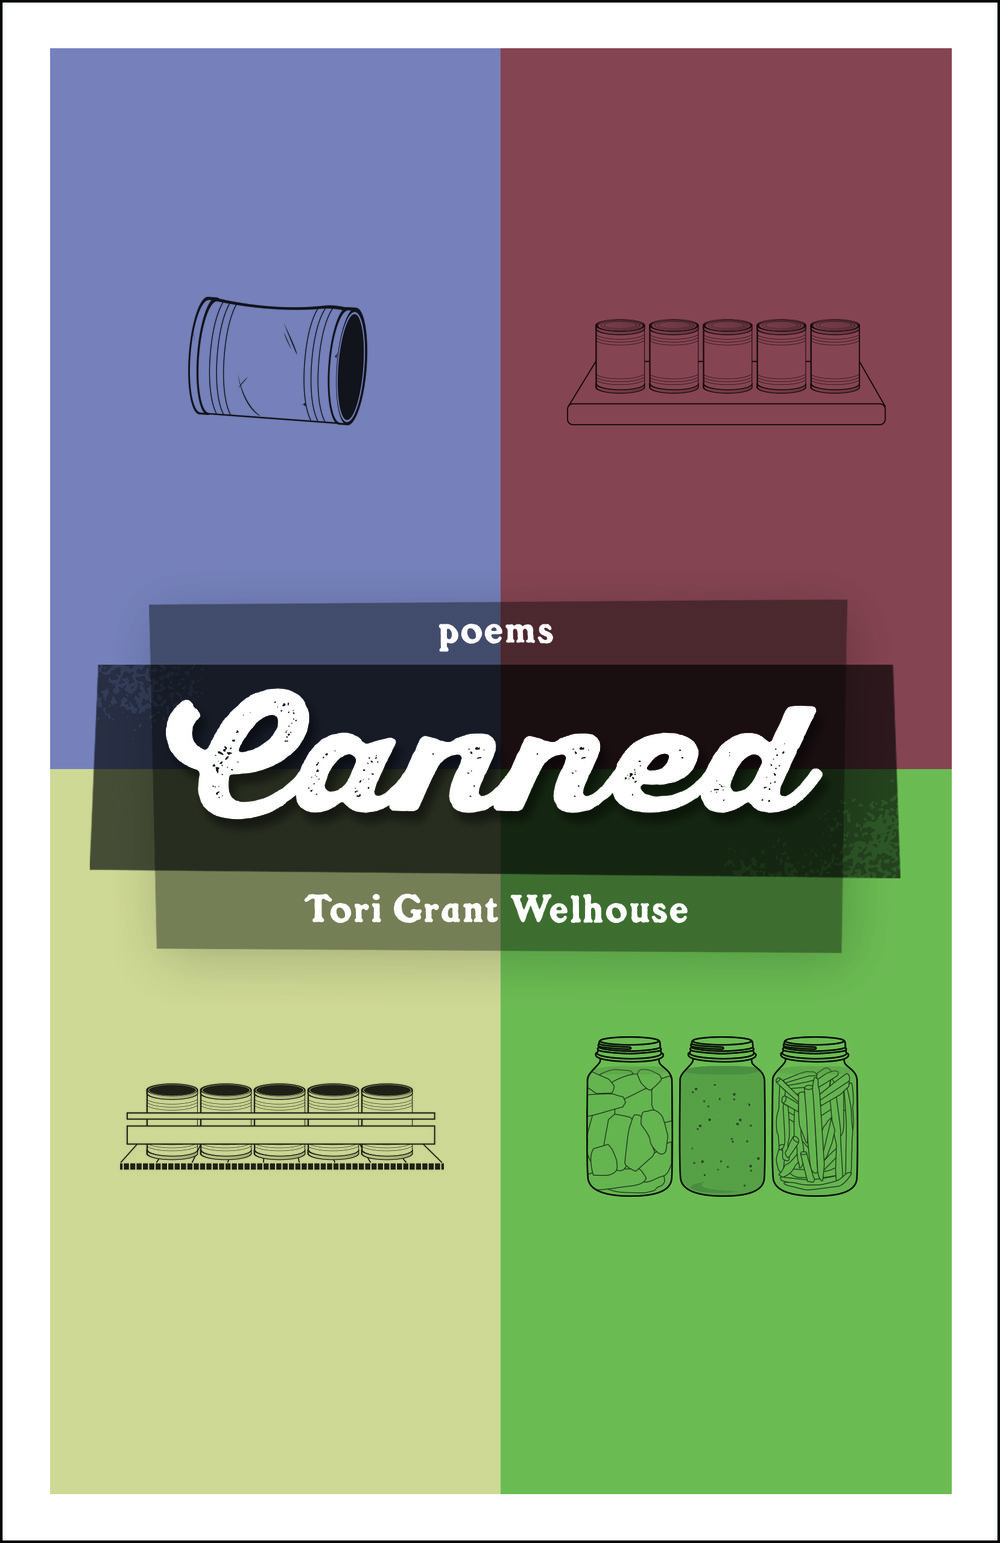 Cover Art - Canned - With Border.jpg